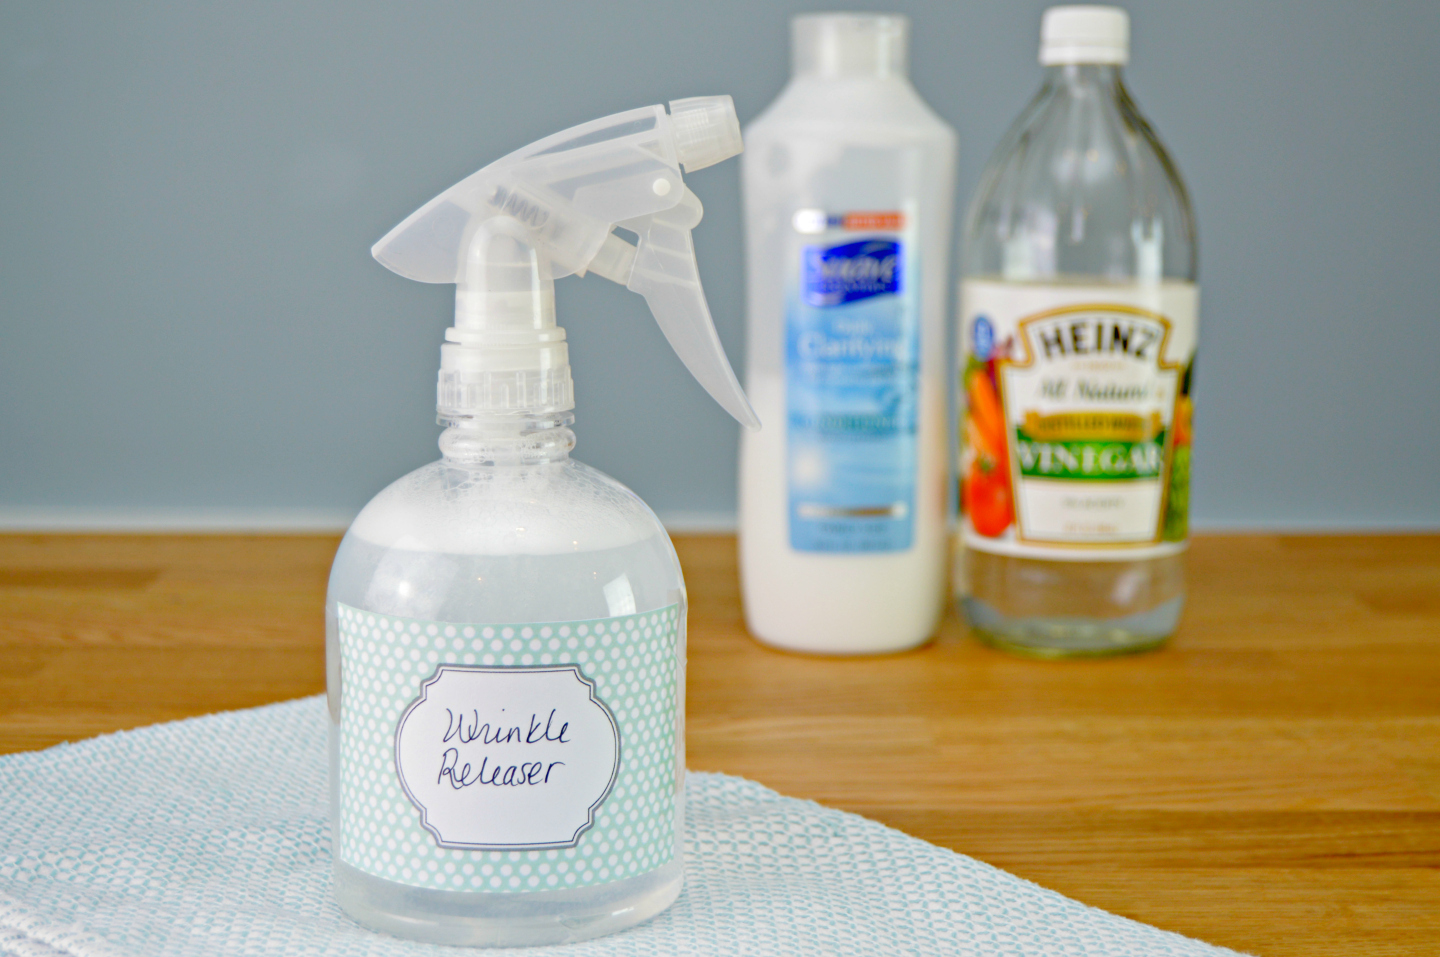 http://www.mom4real.com/wp-content/uploads/2016/10/homemade-wrinkle-releaser-spray.jpg